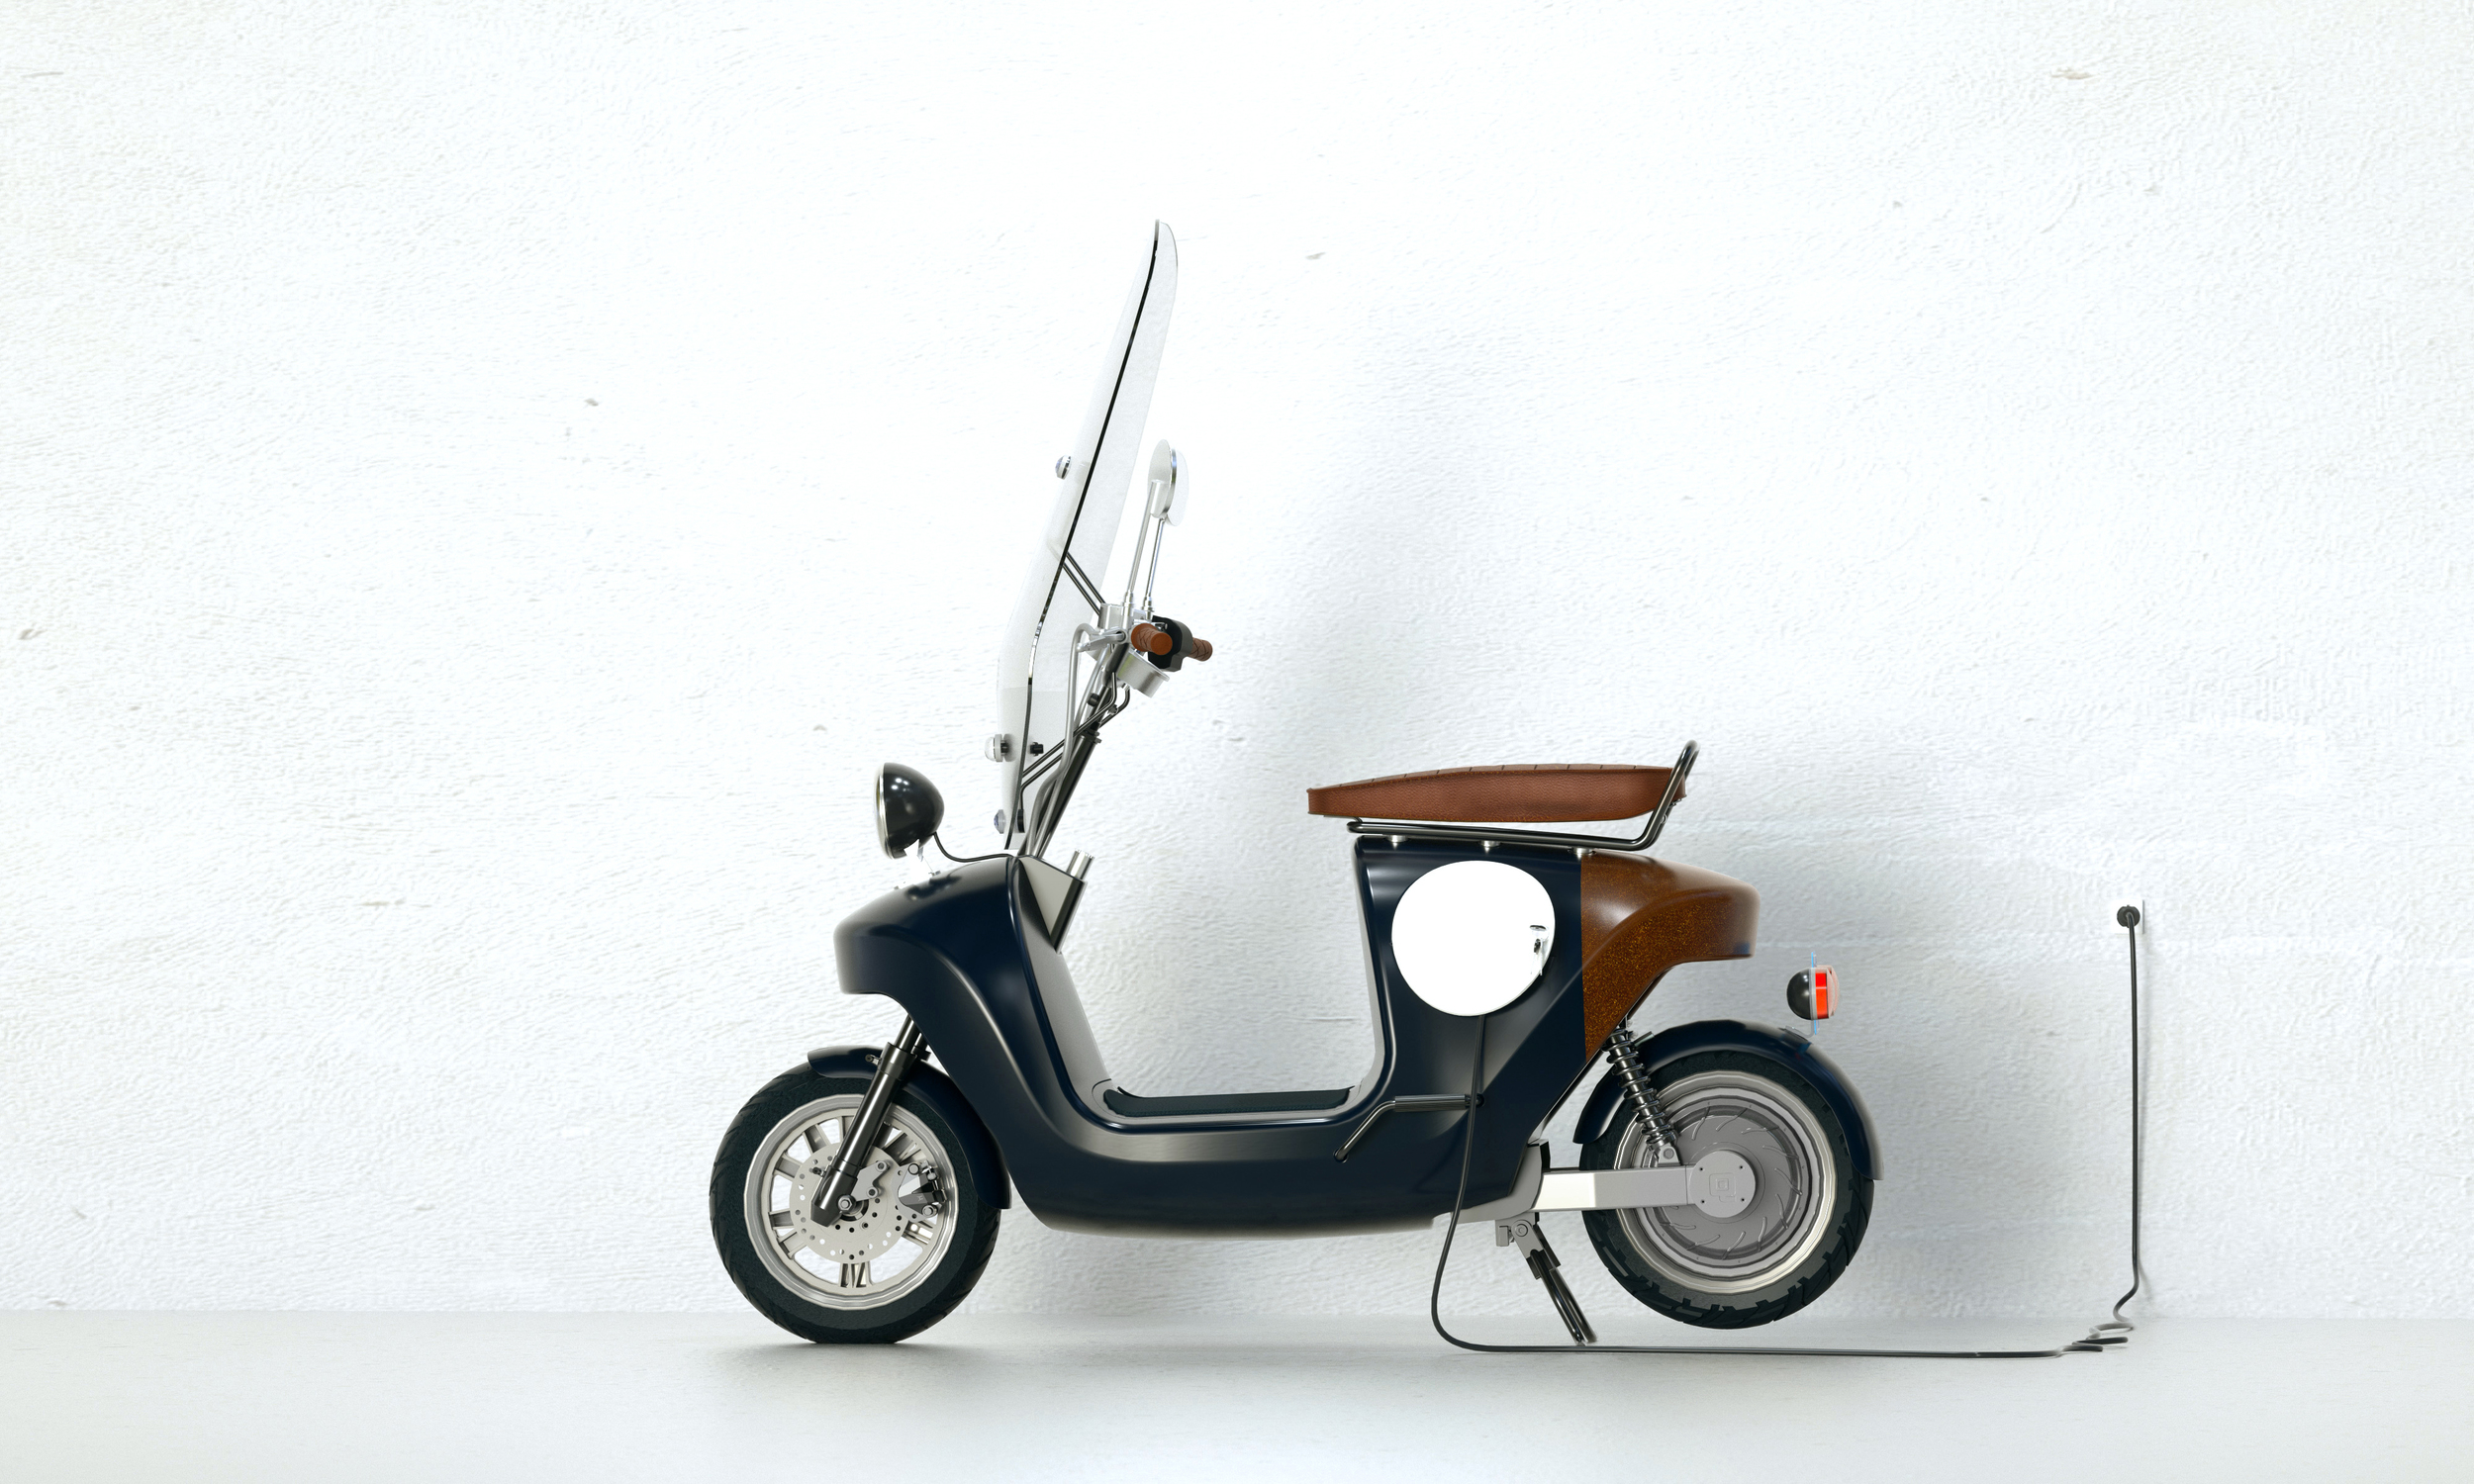 Be.e-frameless-biocomposite-electric-scooter-design-by-waarmakers-sideview charging large.jpg